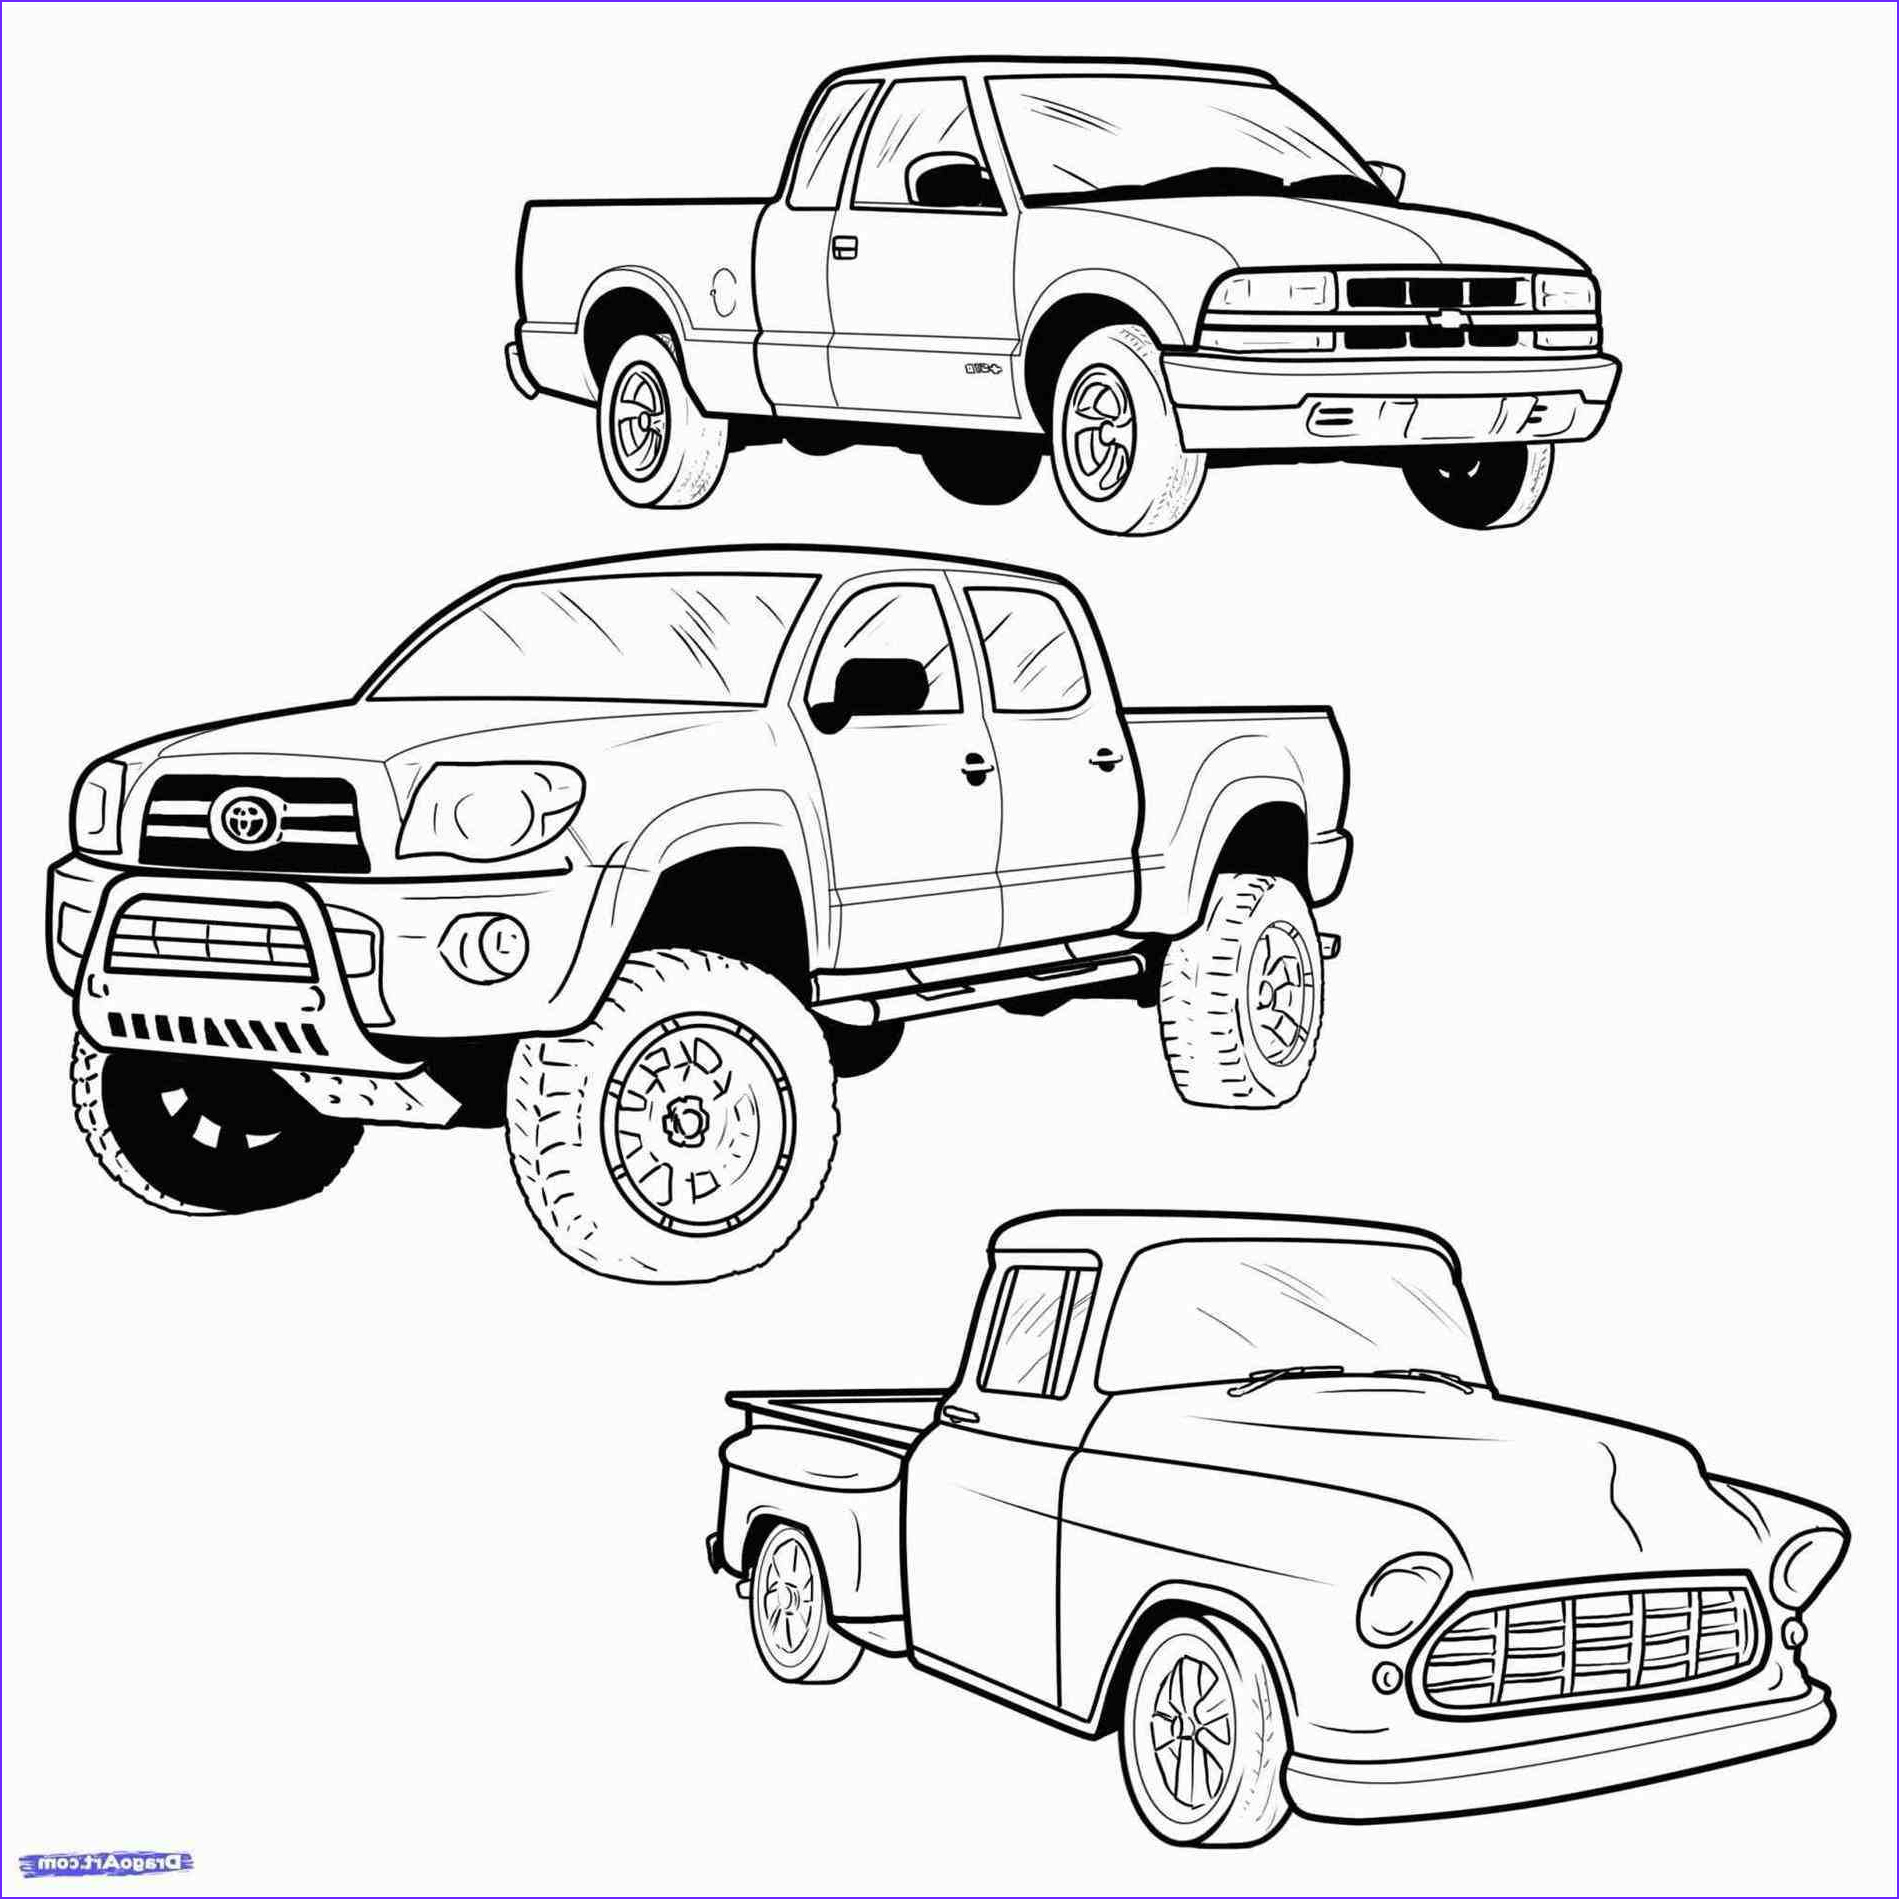 Chevy Silverado Coloring Page Elegant Photos Lifted Truck Coloring Pages at Getcolorings